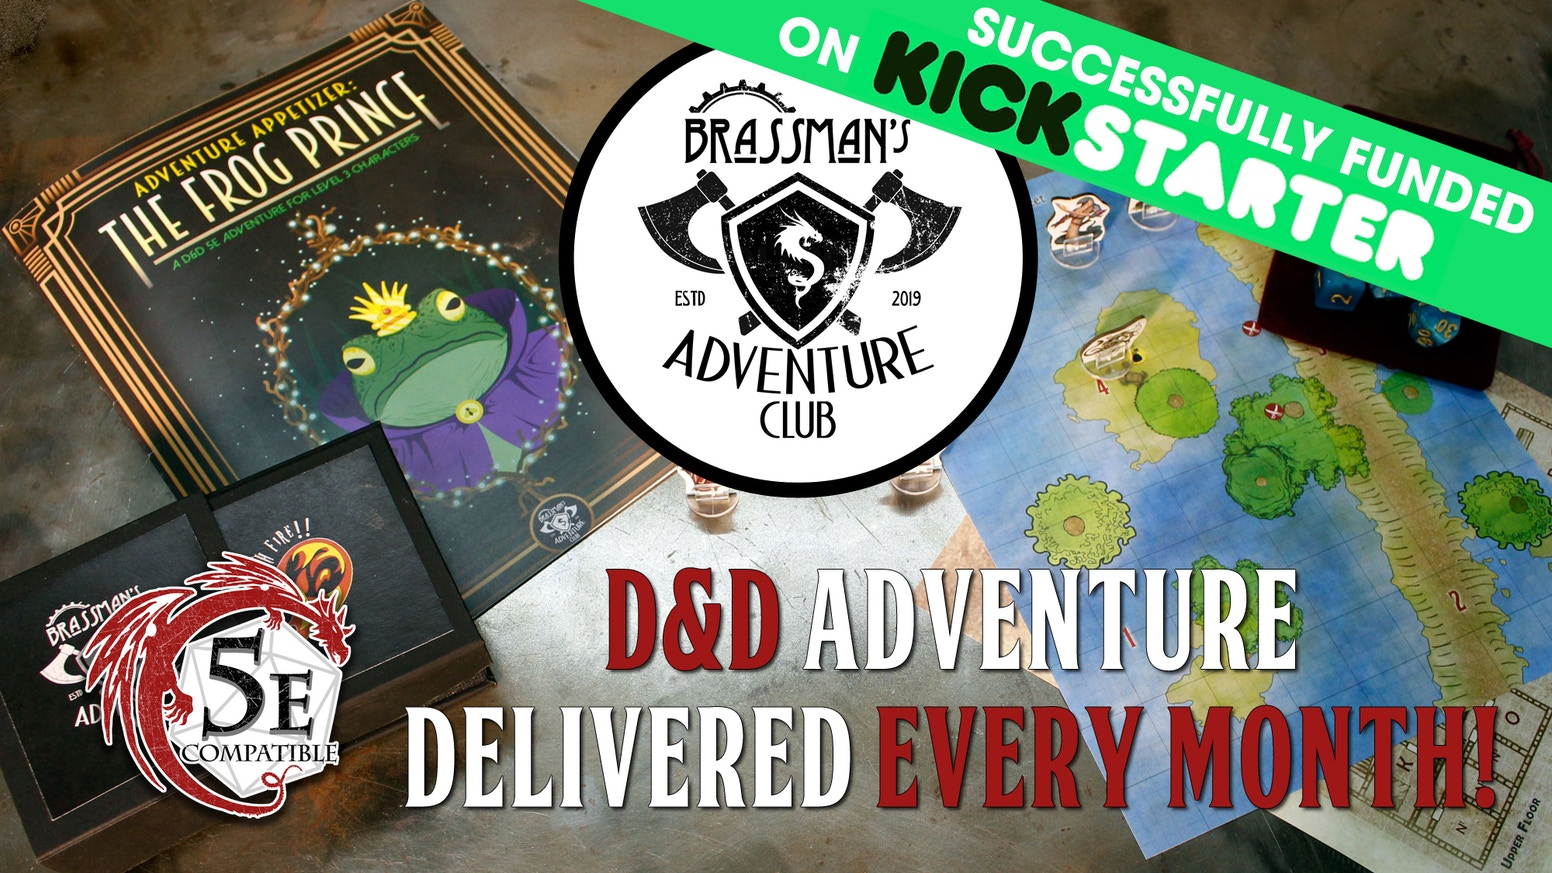 Monthy Subscription Service for DnD Adventures and Accessories